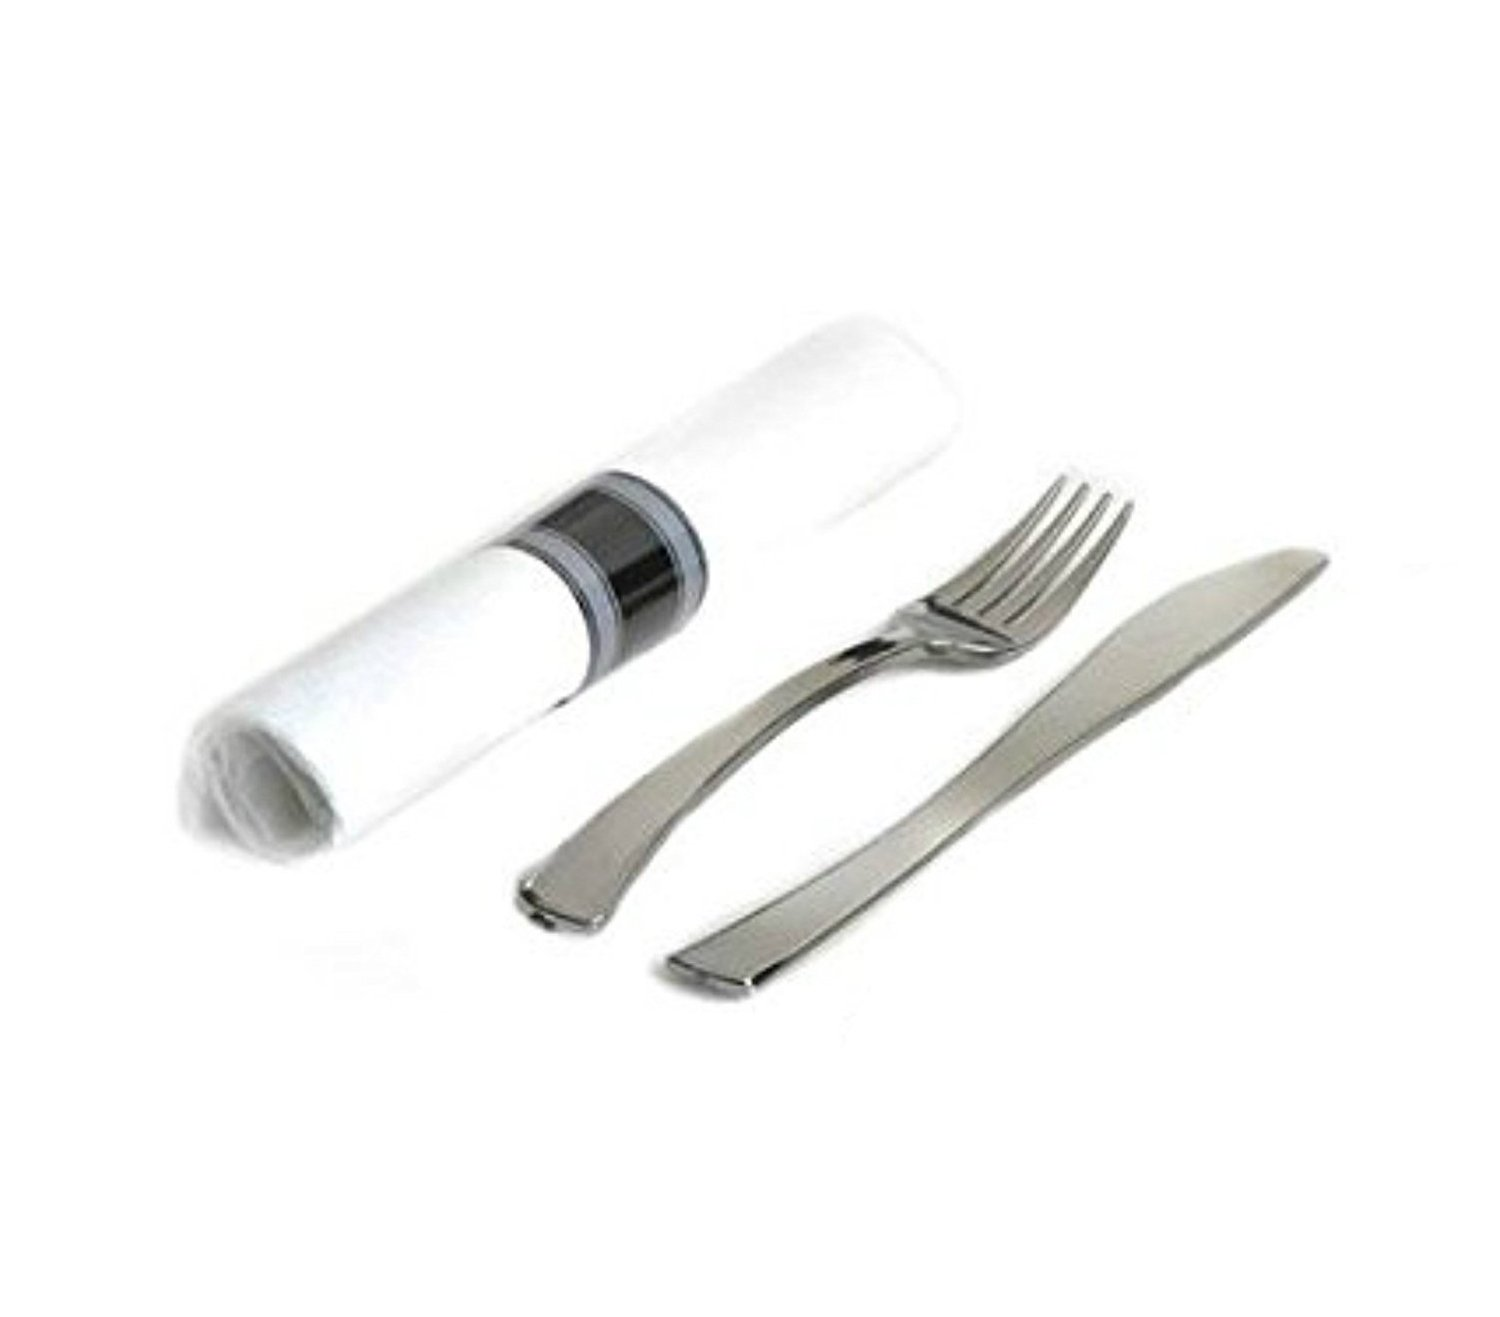 EMI Yoshi EMI-GWFKN Glimmerware Salad Fork-Dinner Knife Rolled Cutlery Kit - Pack of 100 - Silver